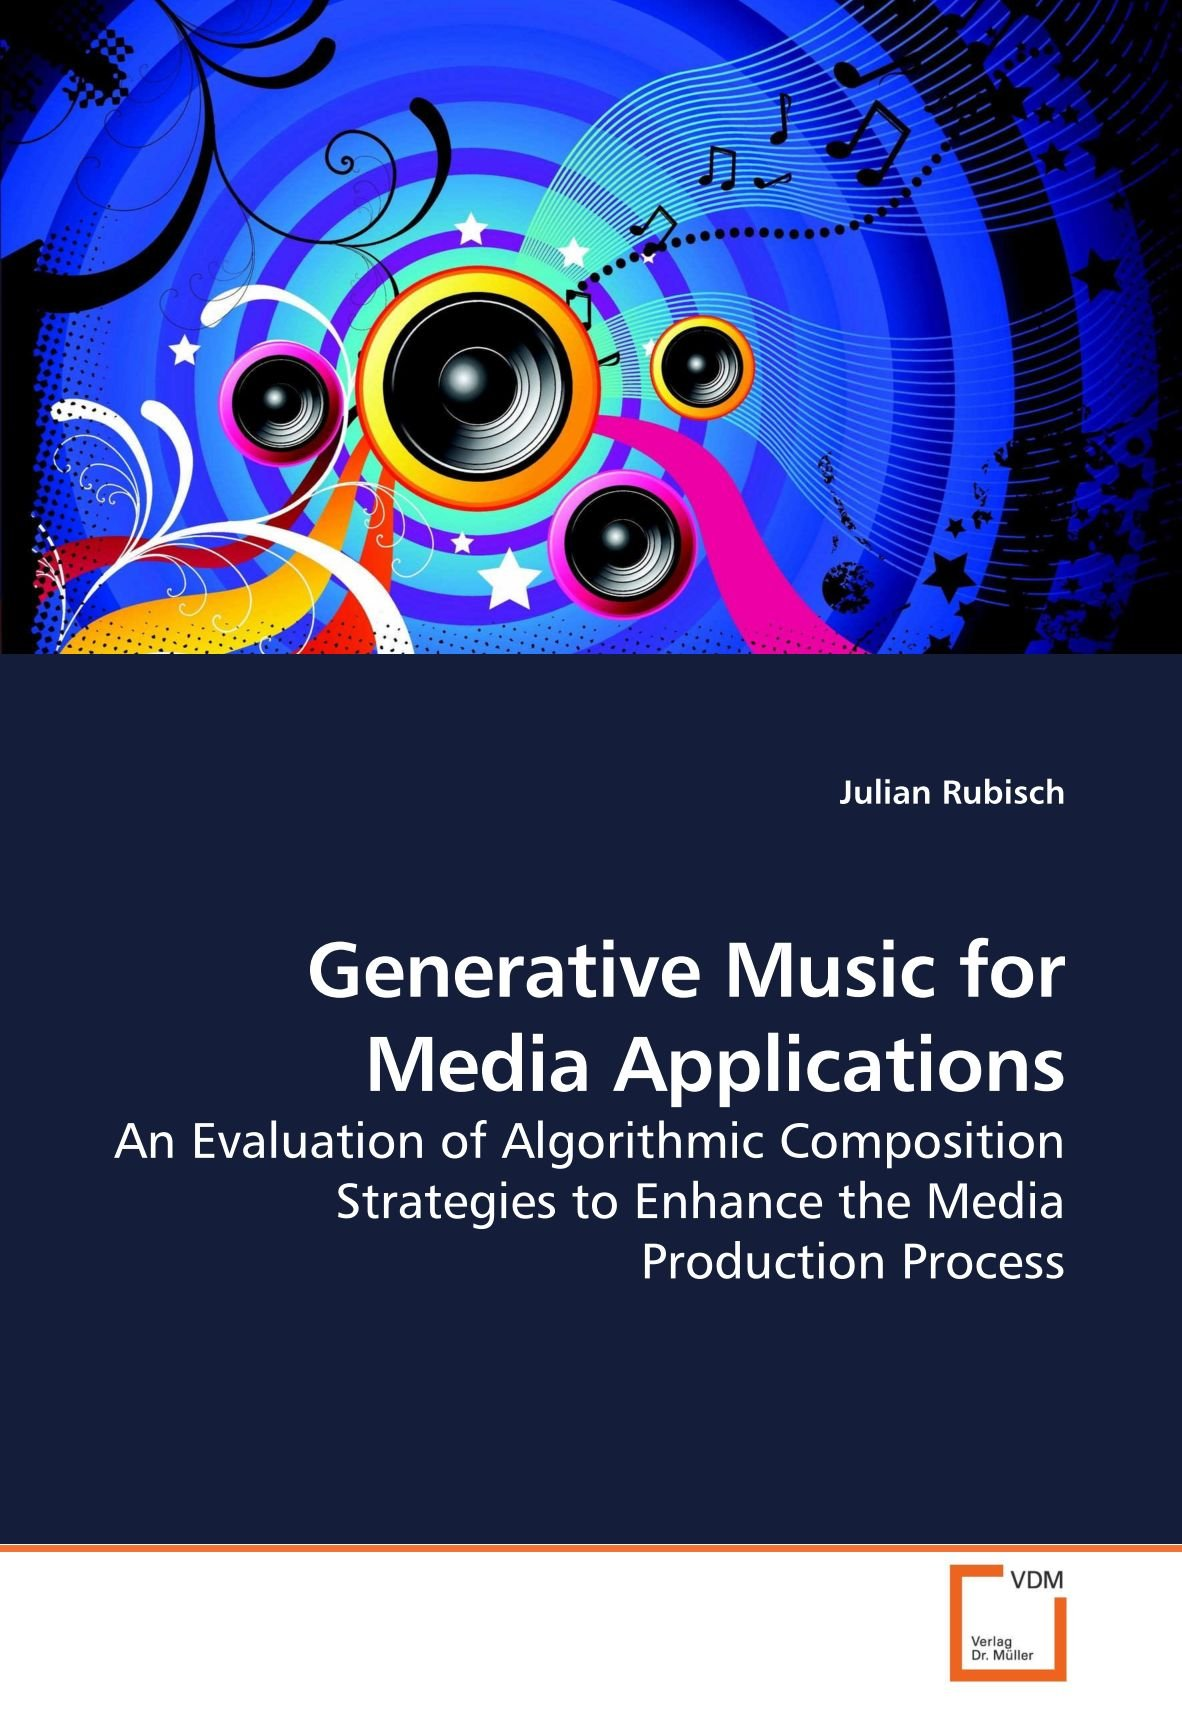 Generative Music for Media Applications: An Evaluation of